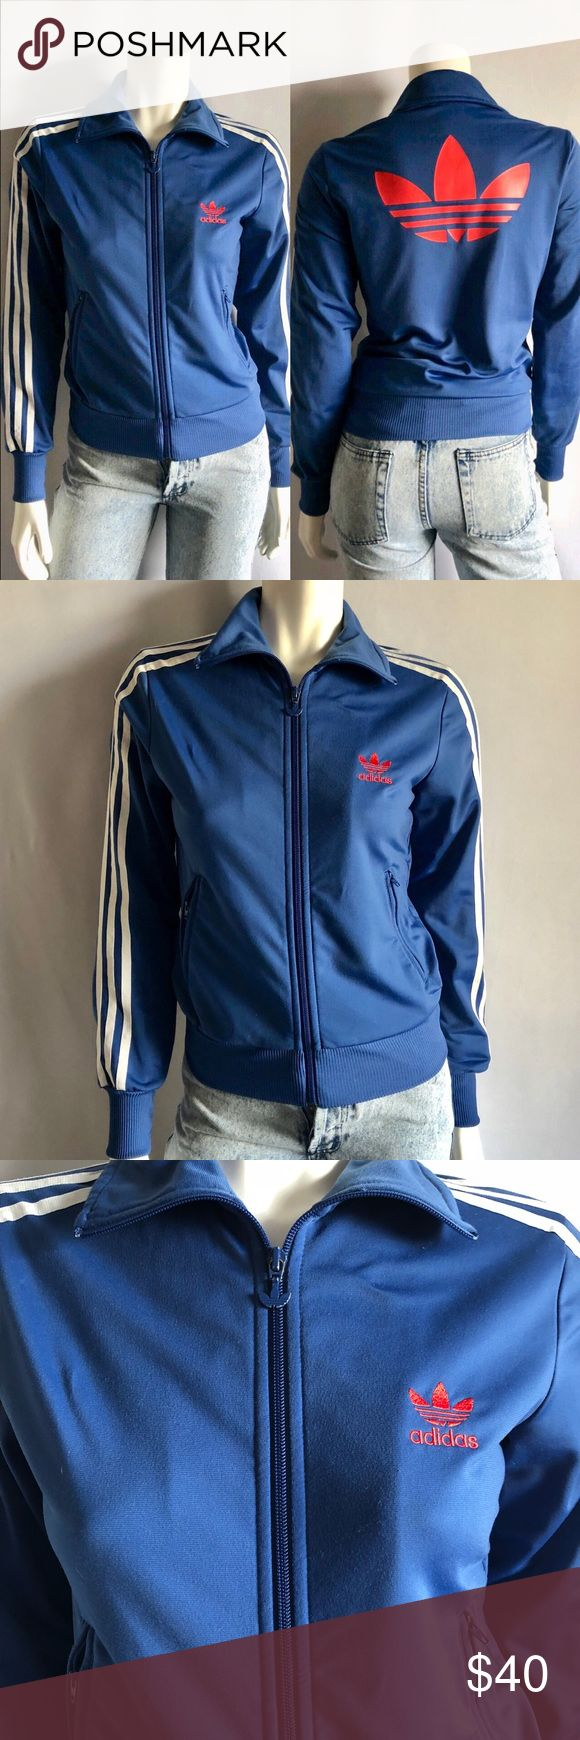 Adidas Originals Track Jacket Adidas Originals Track Jacket comes in blue with the trefoil in red with two front pockets with zipper closure, a single front zipper closure. Size: S fits a size 2/4. In excellent used condition. Some paint wear on the zipper. adidas Jackets & Coats